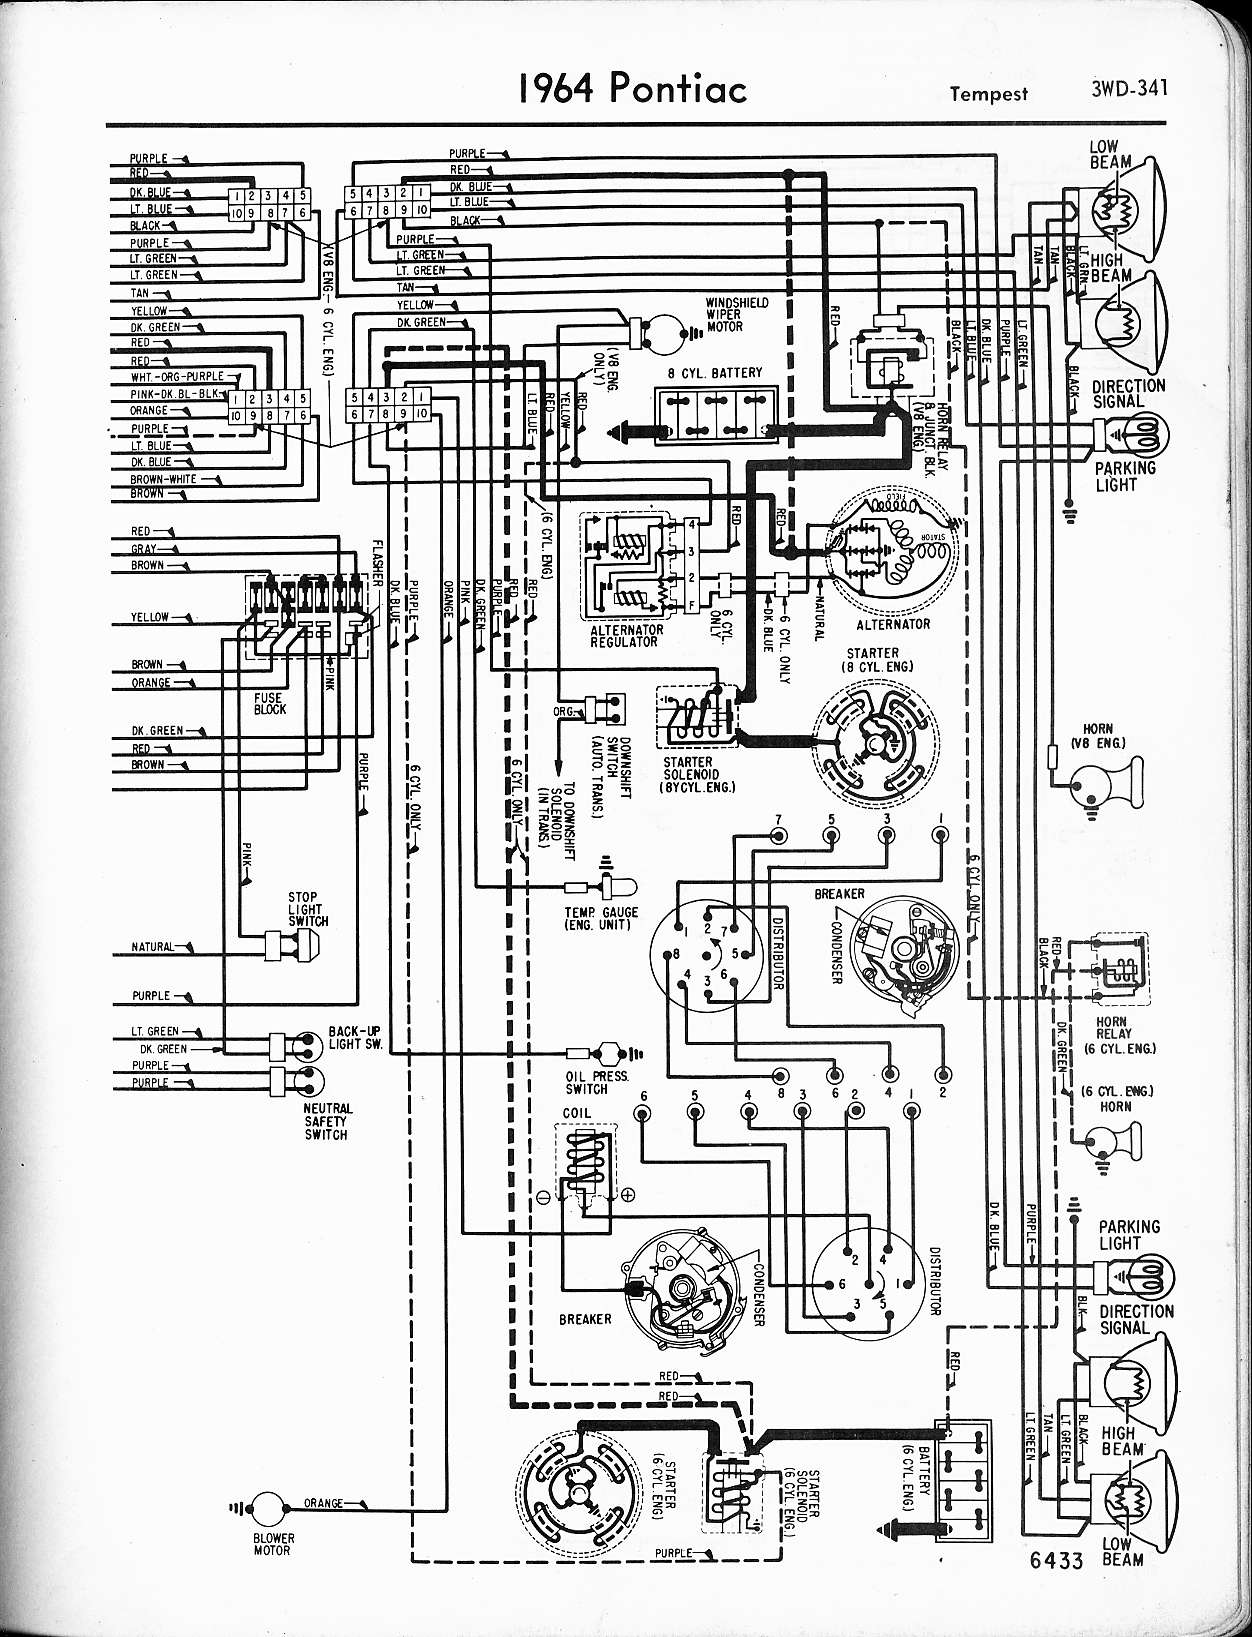 1971 pontiac lemans wiring diagram Images Gallery